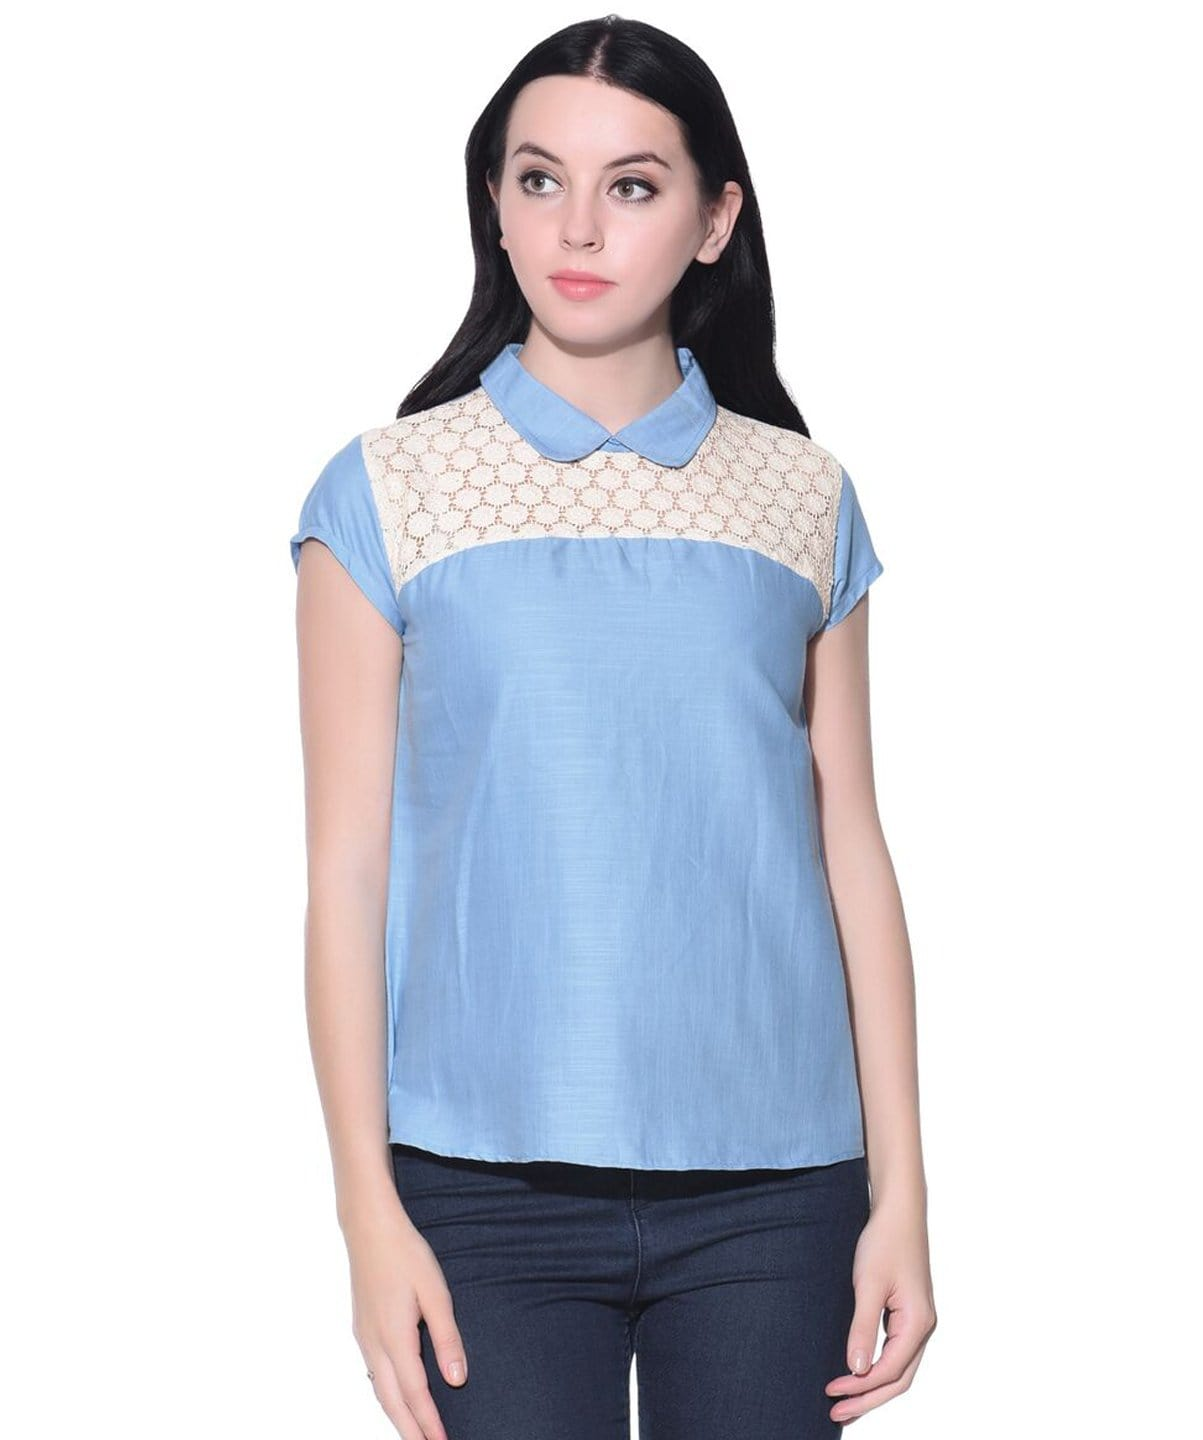 Solid Blue Lace Chambray Collared Top - Uptownie